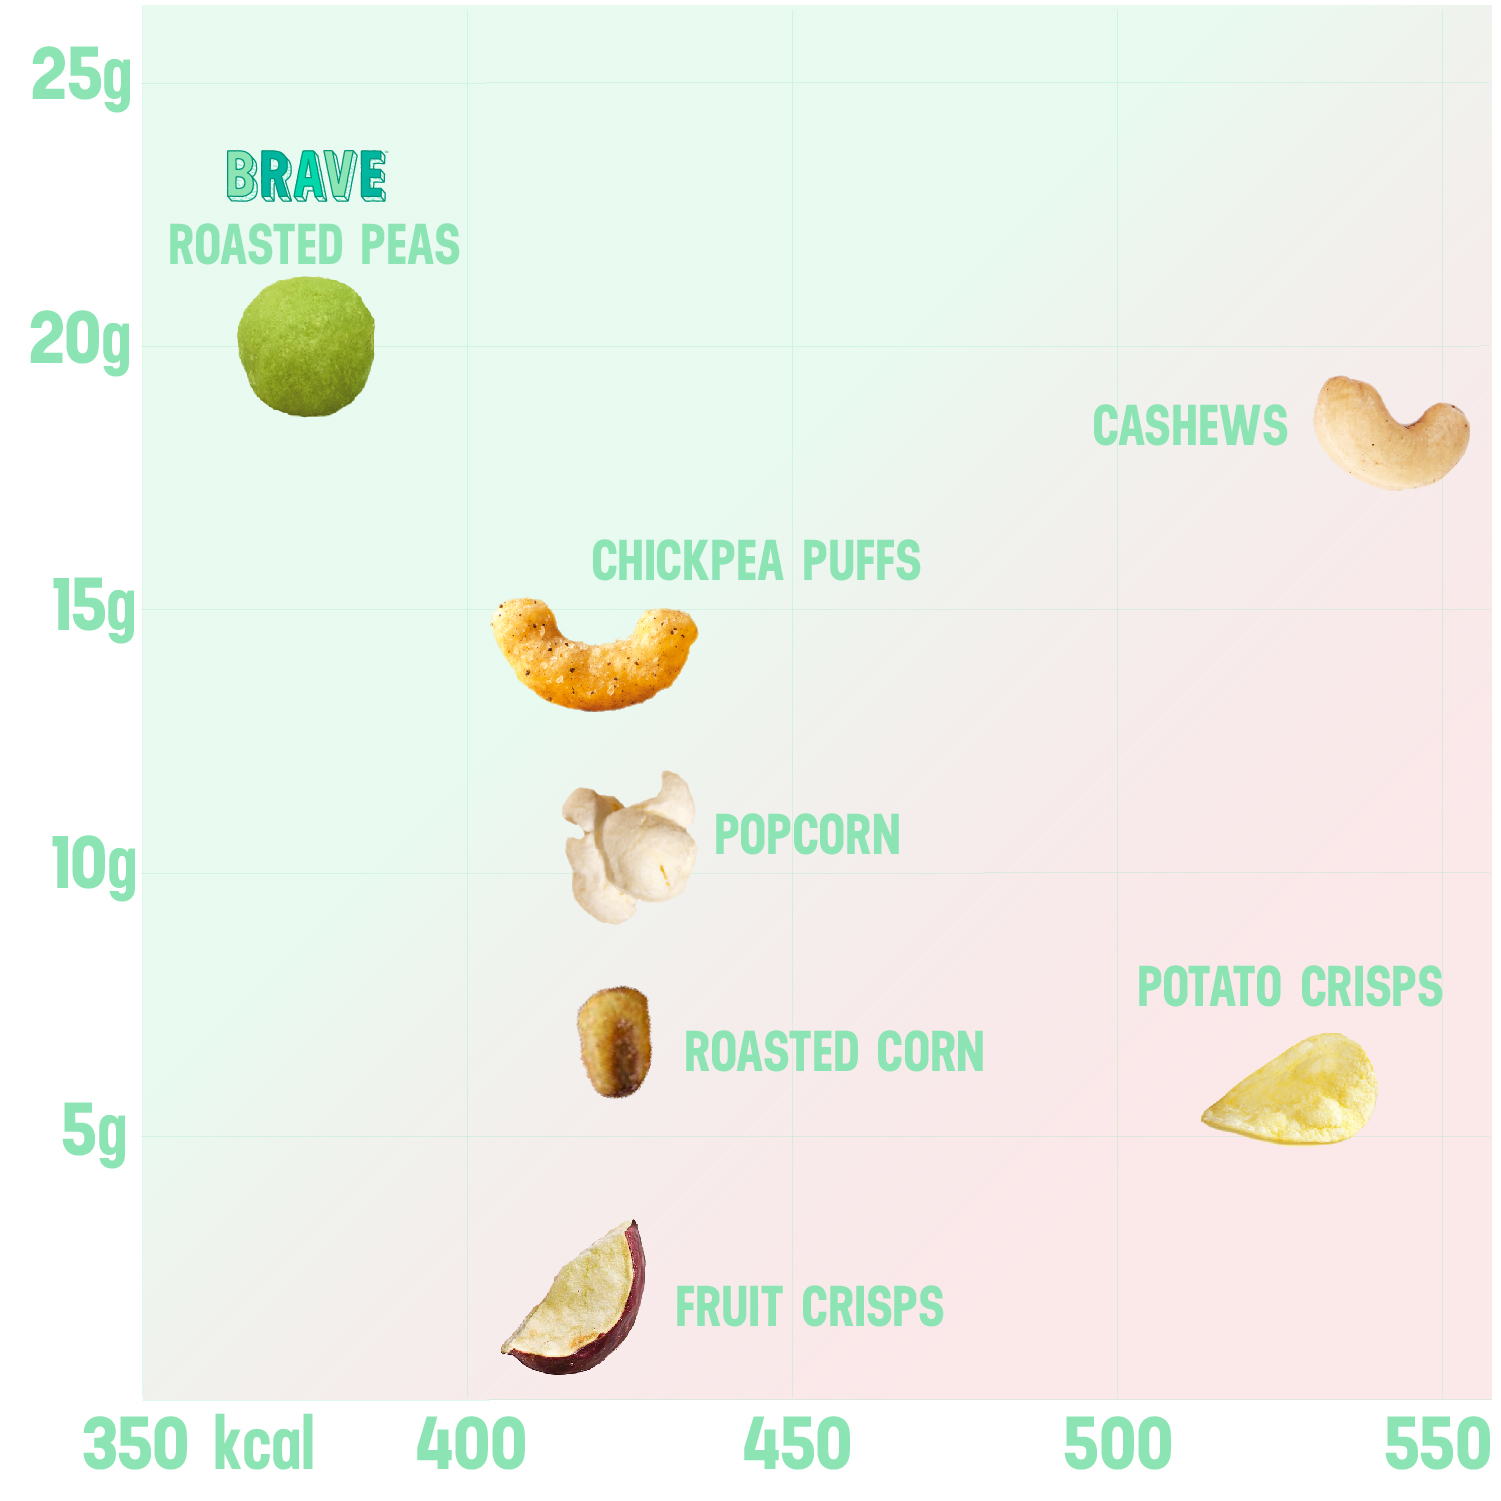 LESS IS MORE - Our peas are categorised as 'nutrient dense'. We don't like to brag but it's a pretty exclusive club to belong to. It's the technical term for foods that contain high volumes of vitamins, minerals, healthy fats, lean protein and complex carbohydrates (read: fibre) but comparatively low on the amount of calories they contain.